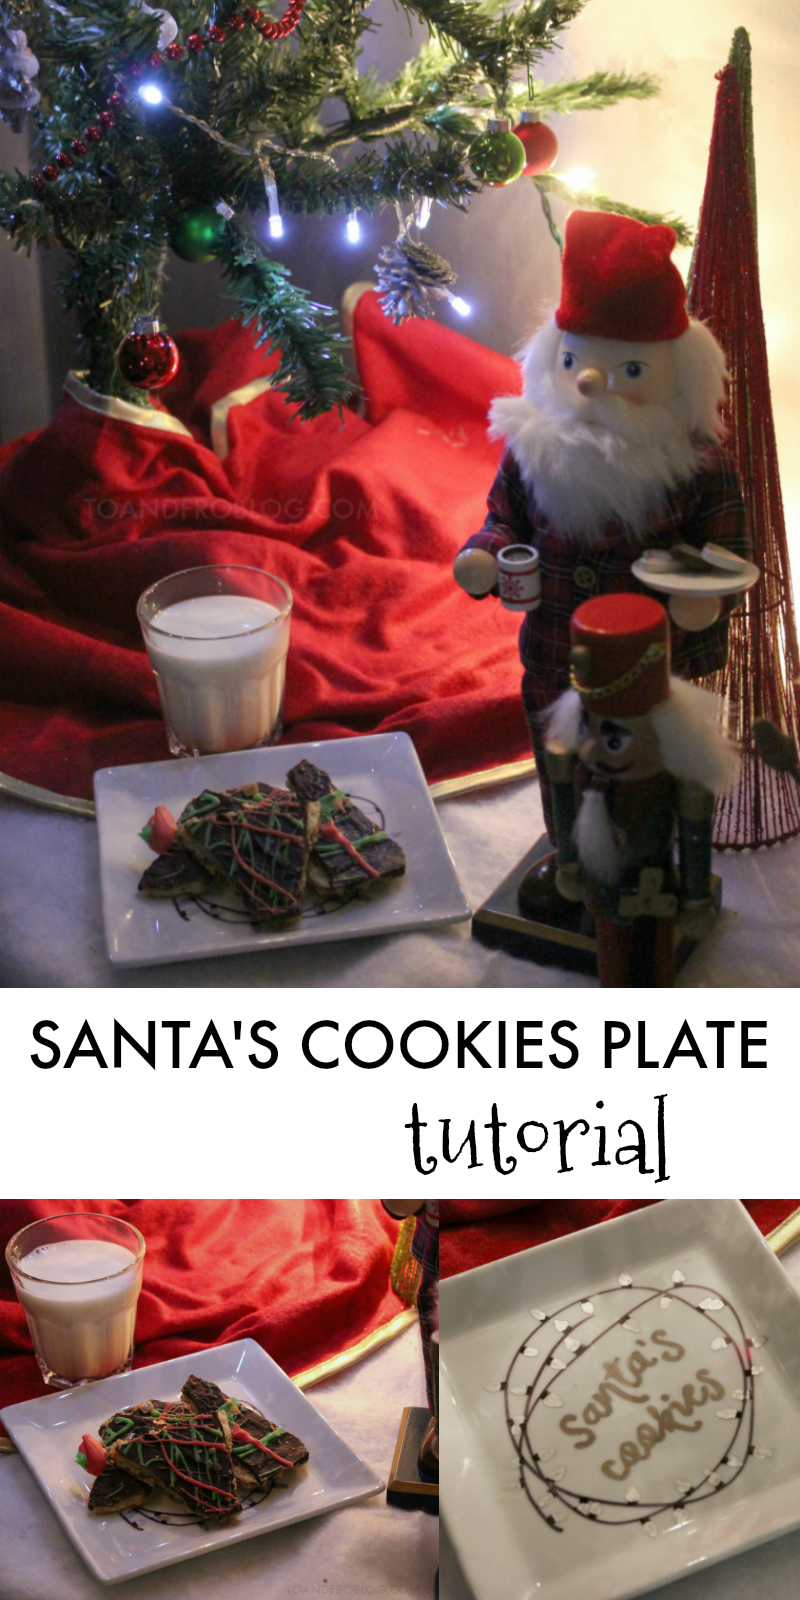 Santa's Cookies Plate Tutorial